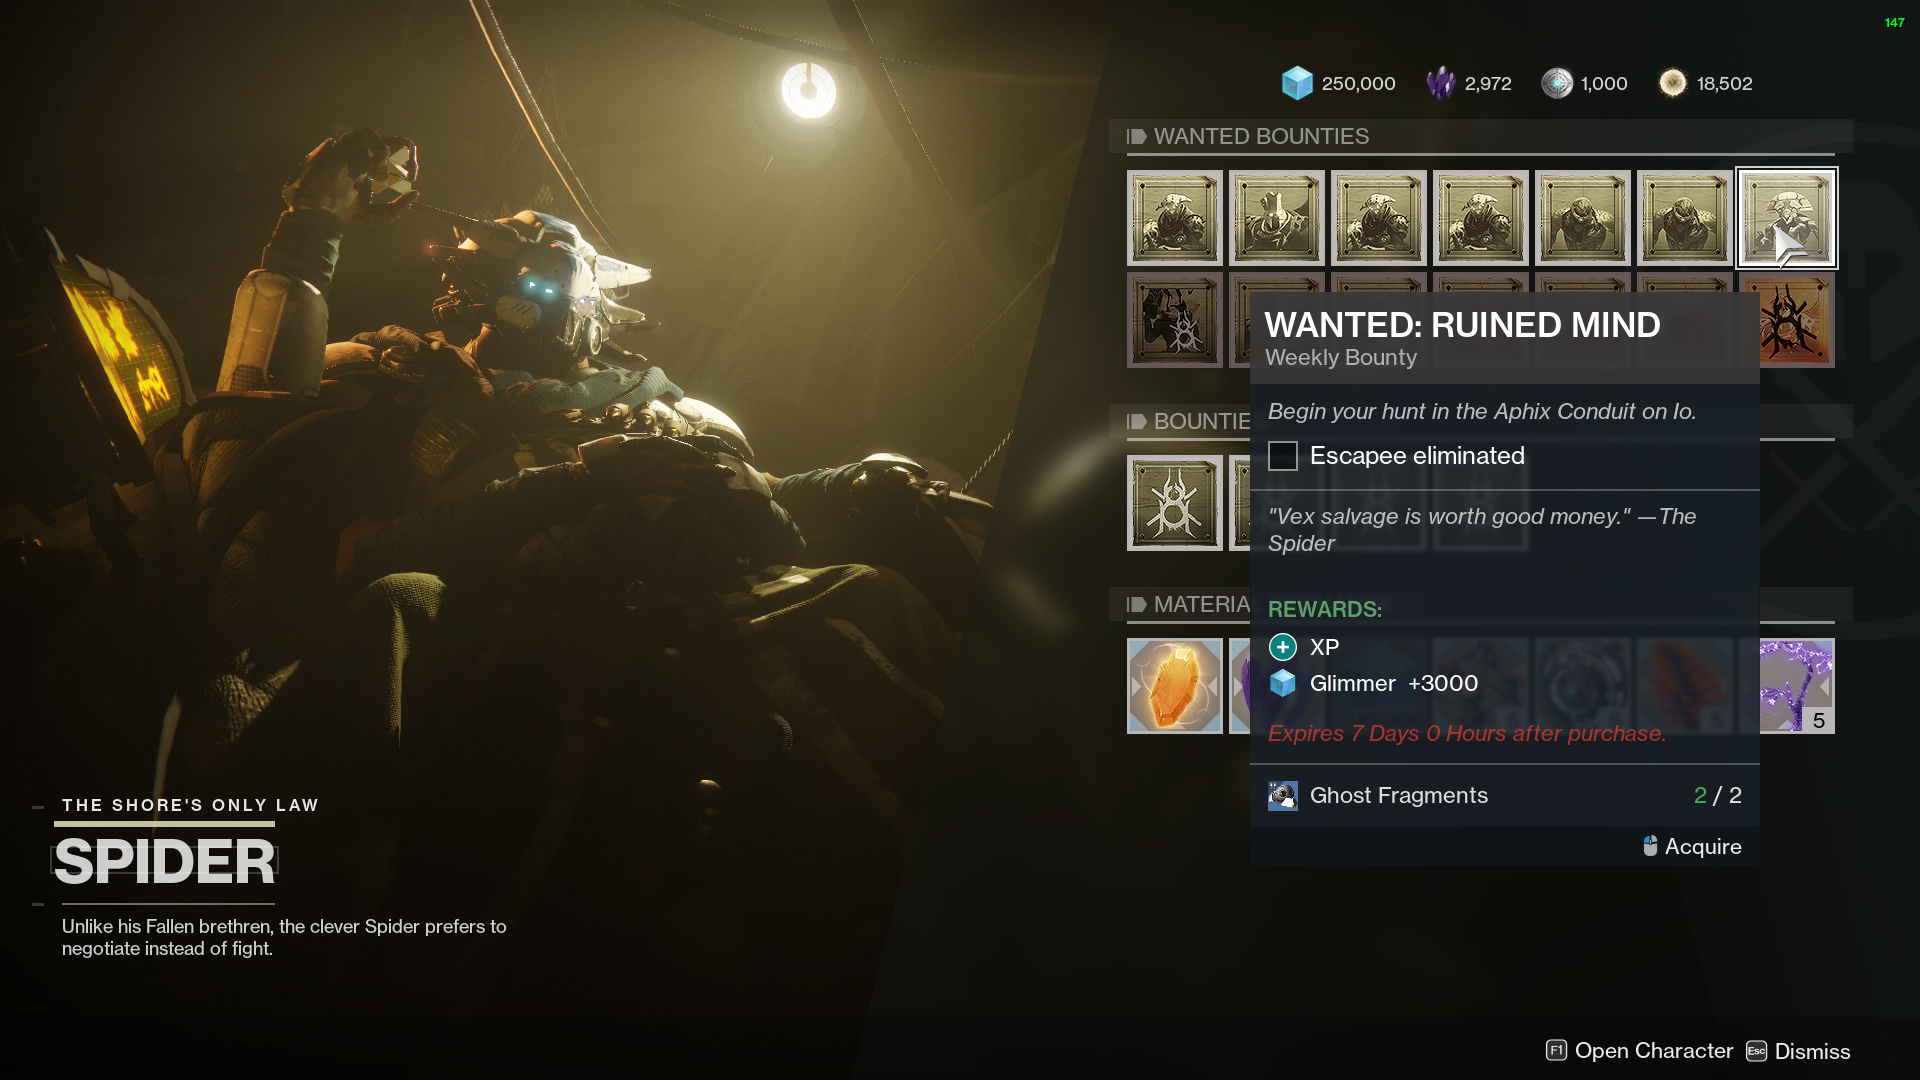 destiny 2 spider wanted ruined mind